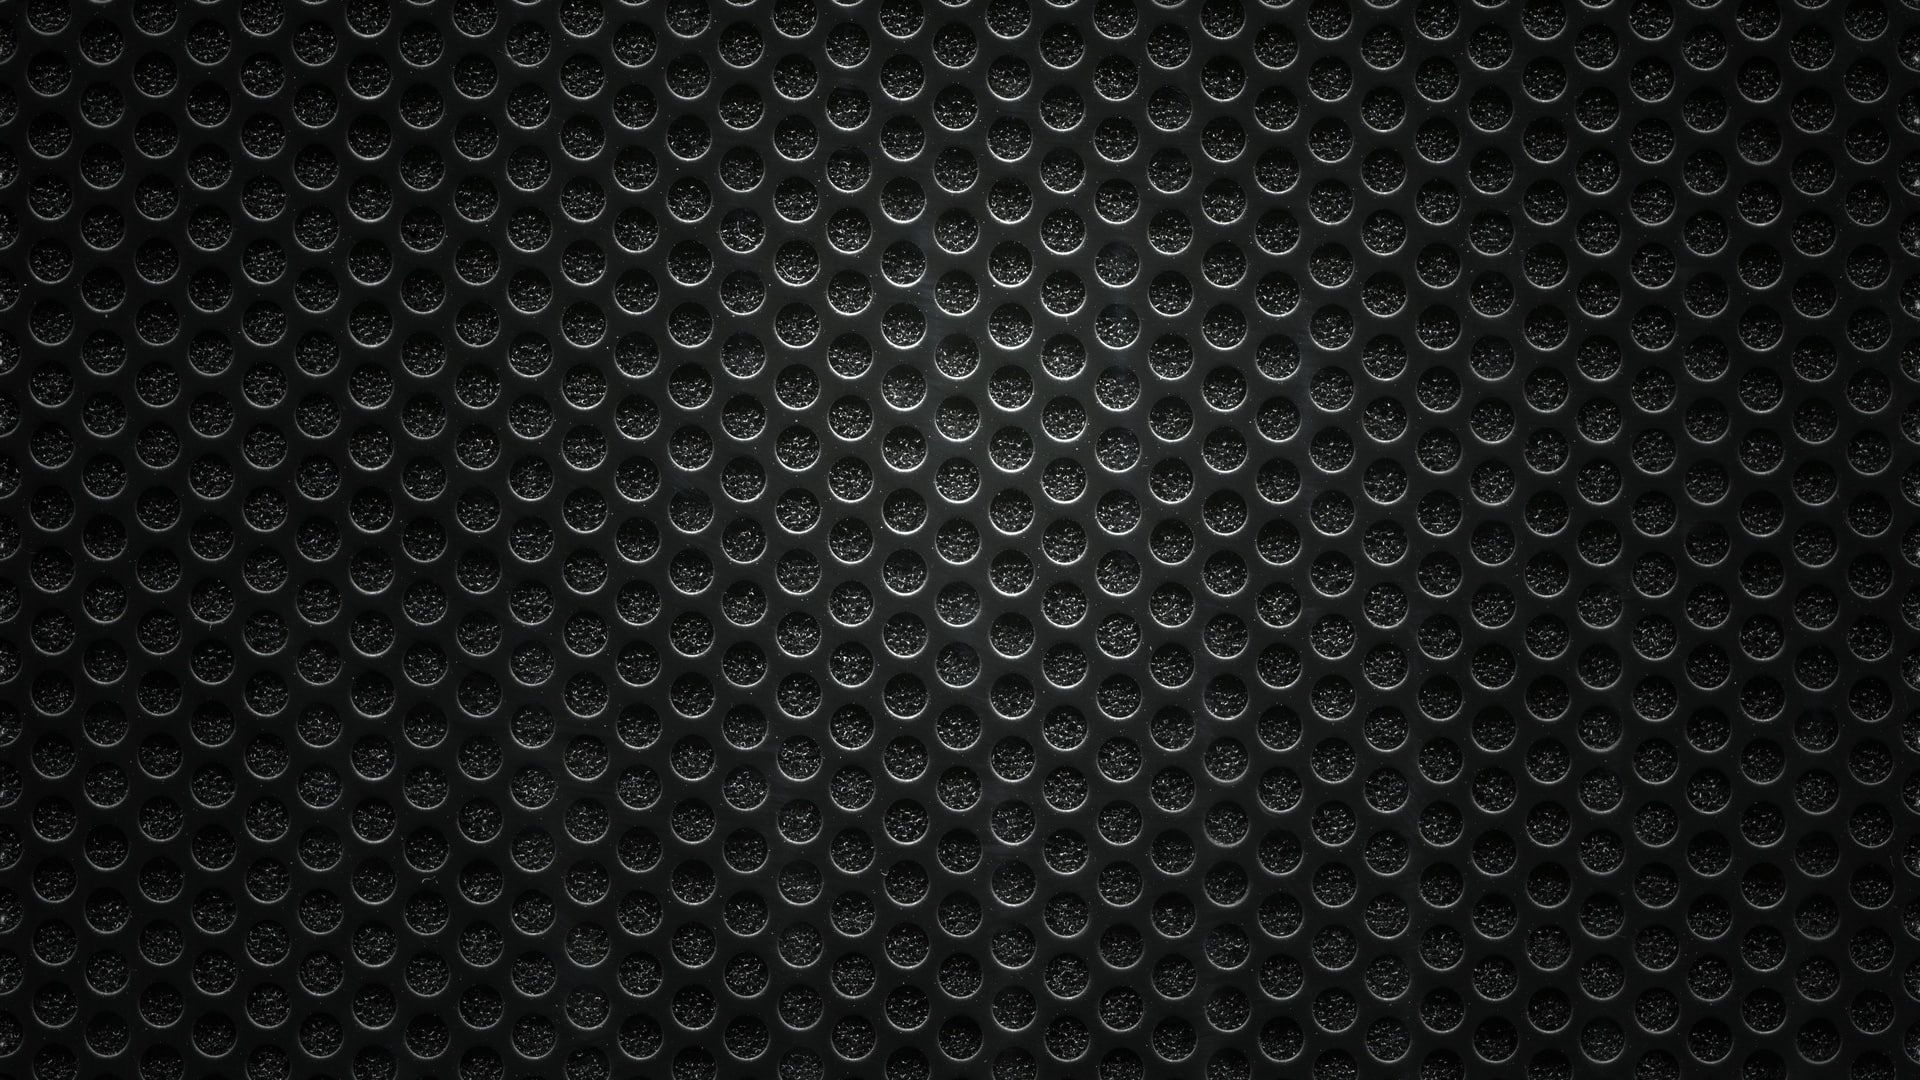 Black Background Texture 1080p Wallpaper Hdwallpaper Desktop In 2020 Black Hd Wallpaper Black And Blue Wallpaper Metal Background